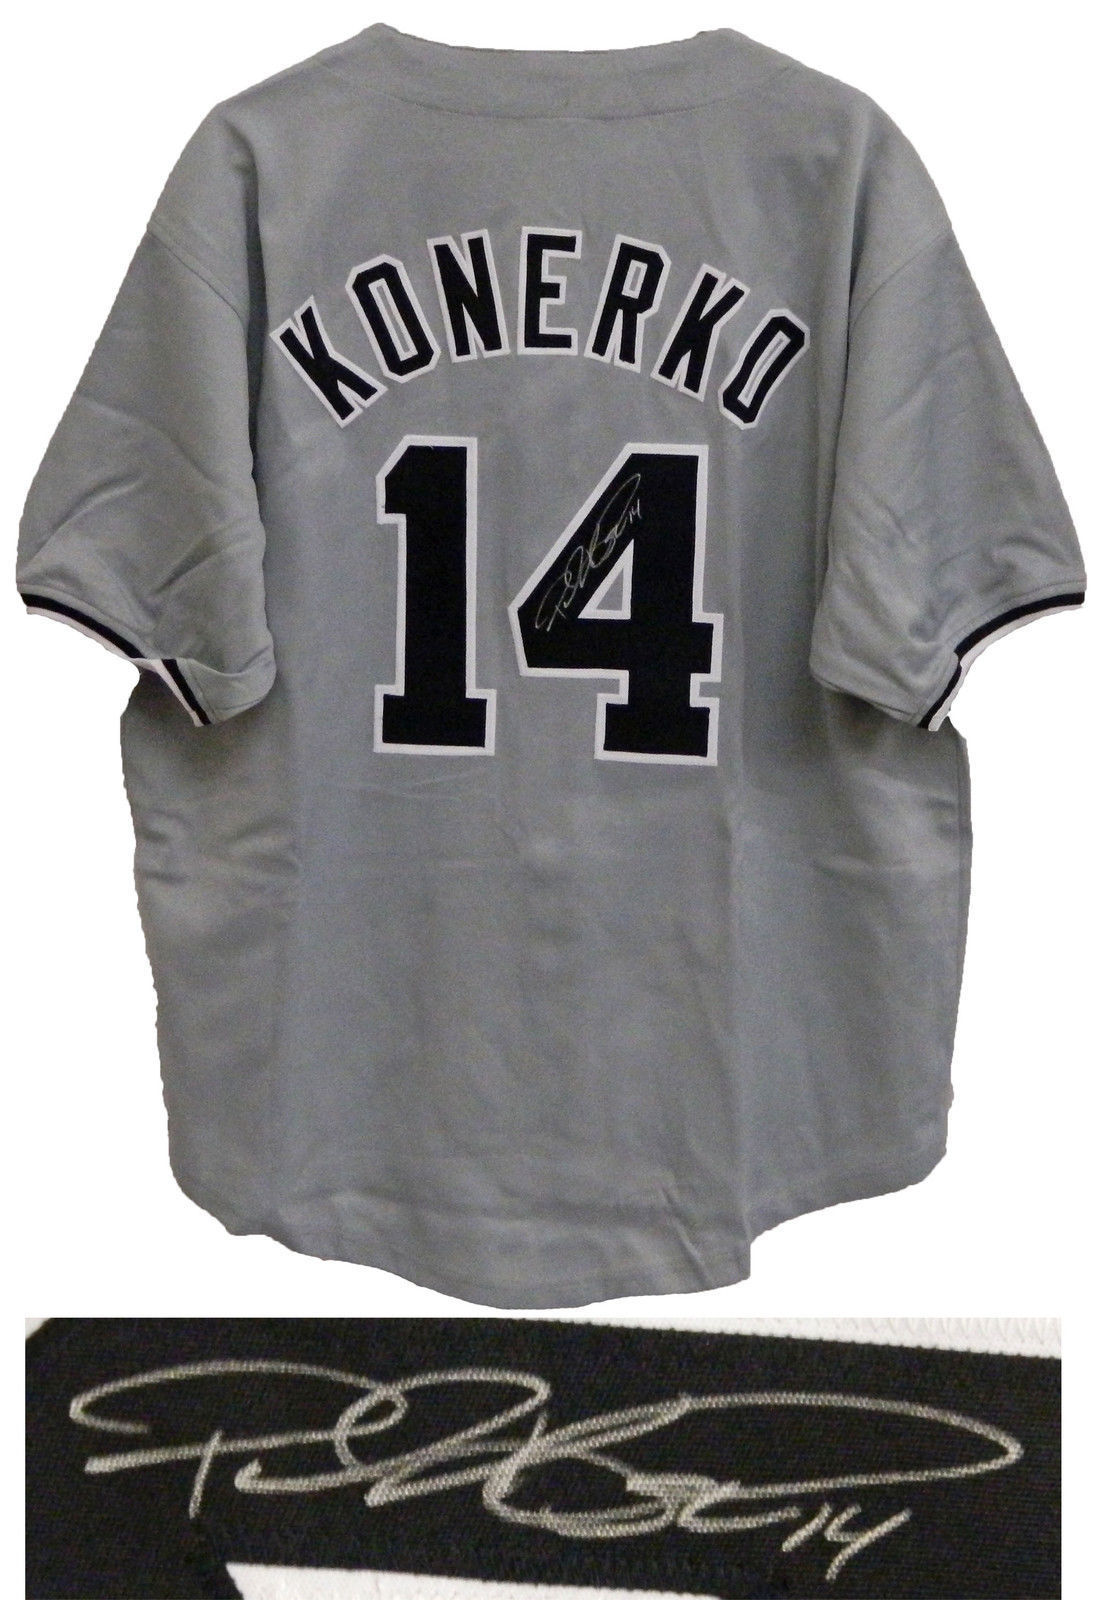 competitive price 09923 8108f PAUL KONERKO AUTORGAPHED SIGNED CHICAGO WHITE SOX JERSEY